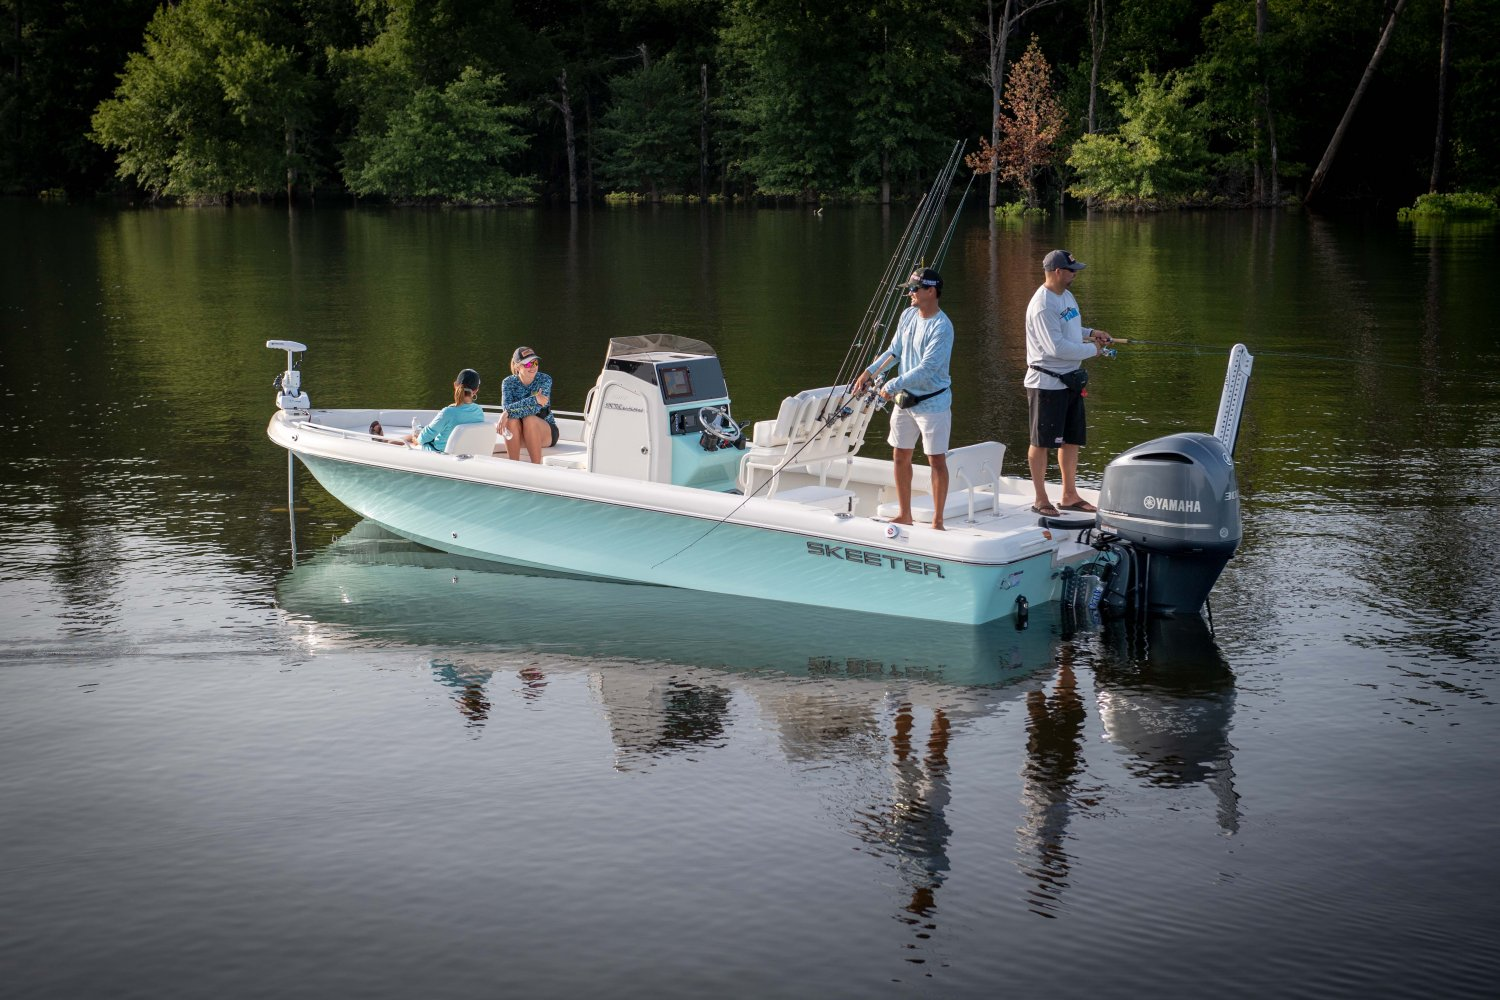 Skeeter SX2550 Fish: Lets Dive In